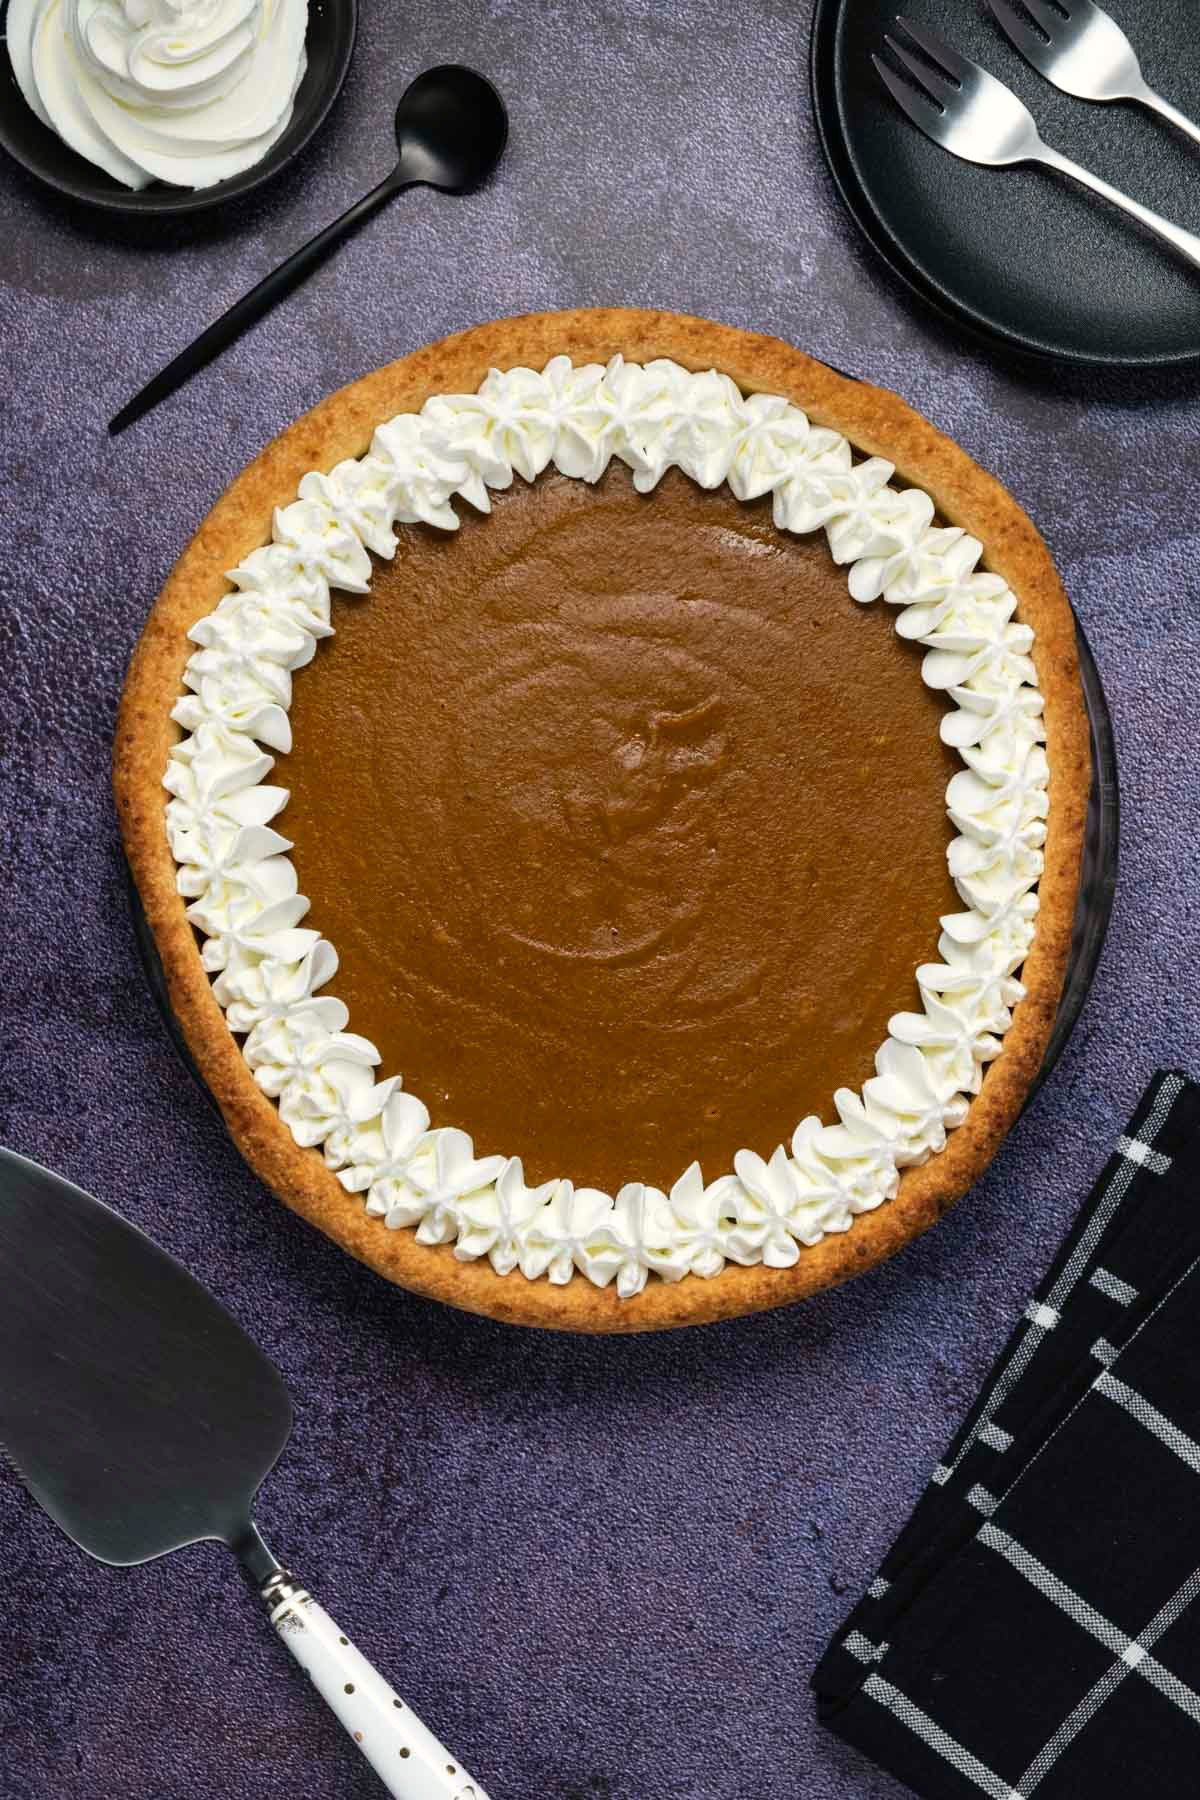 Pumpkin pie with whipped cream decoration in a glass pie dish.